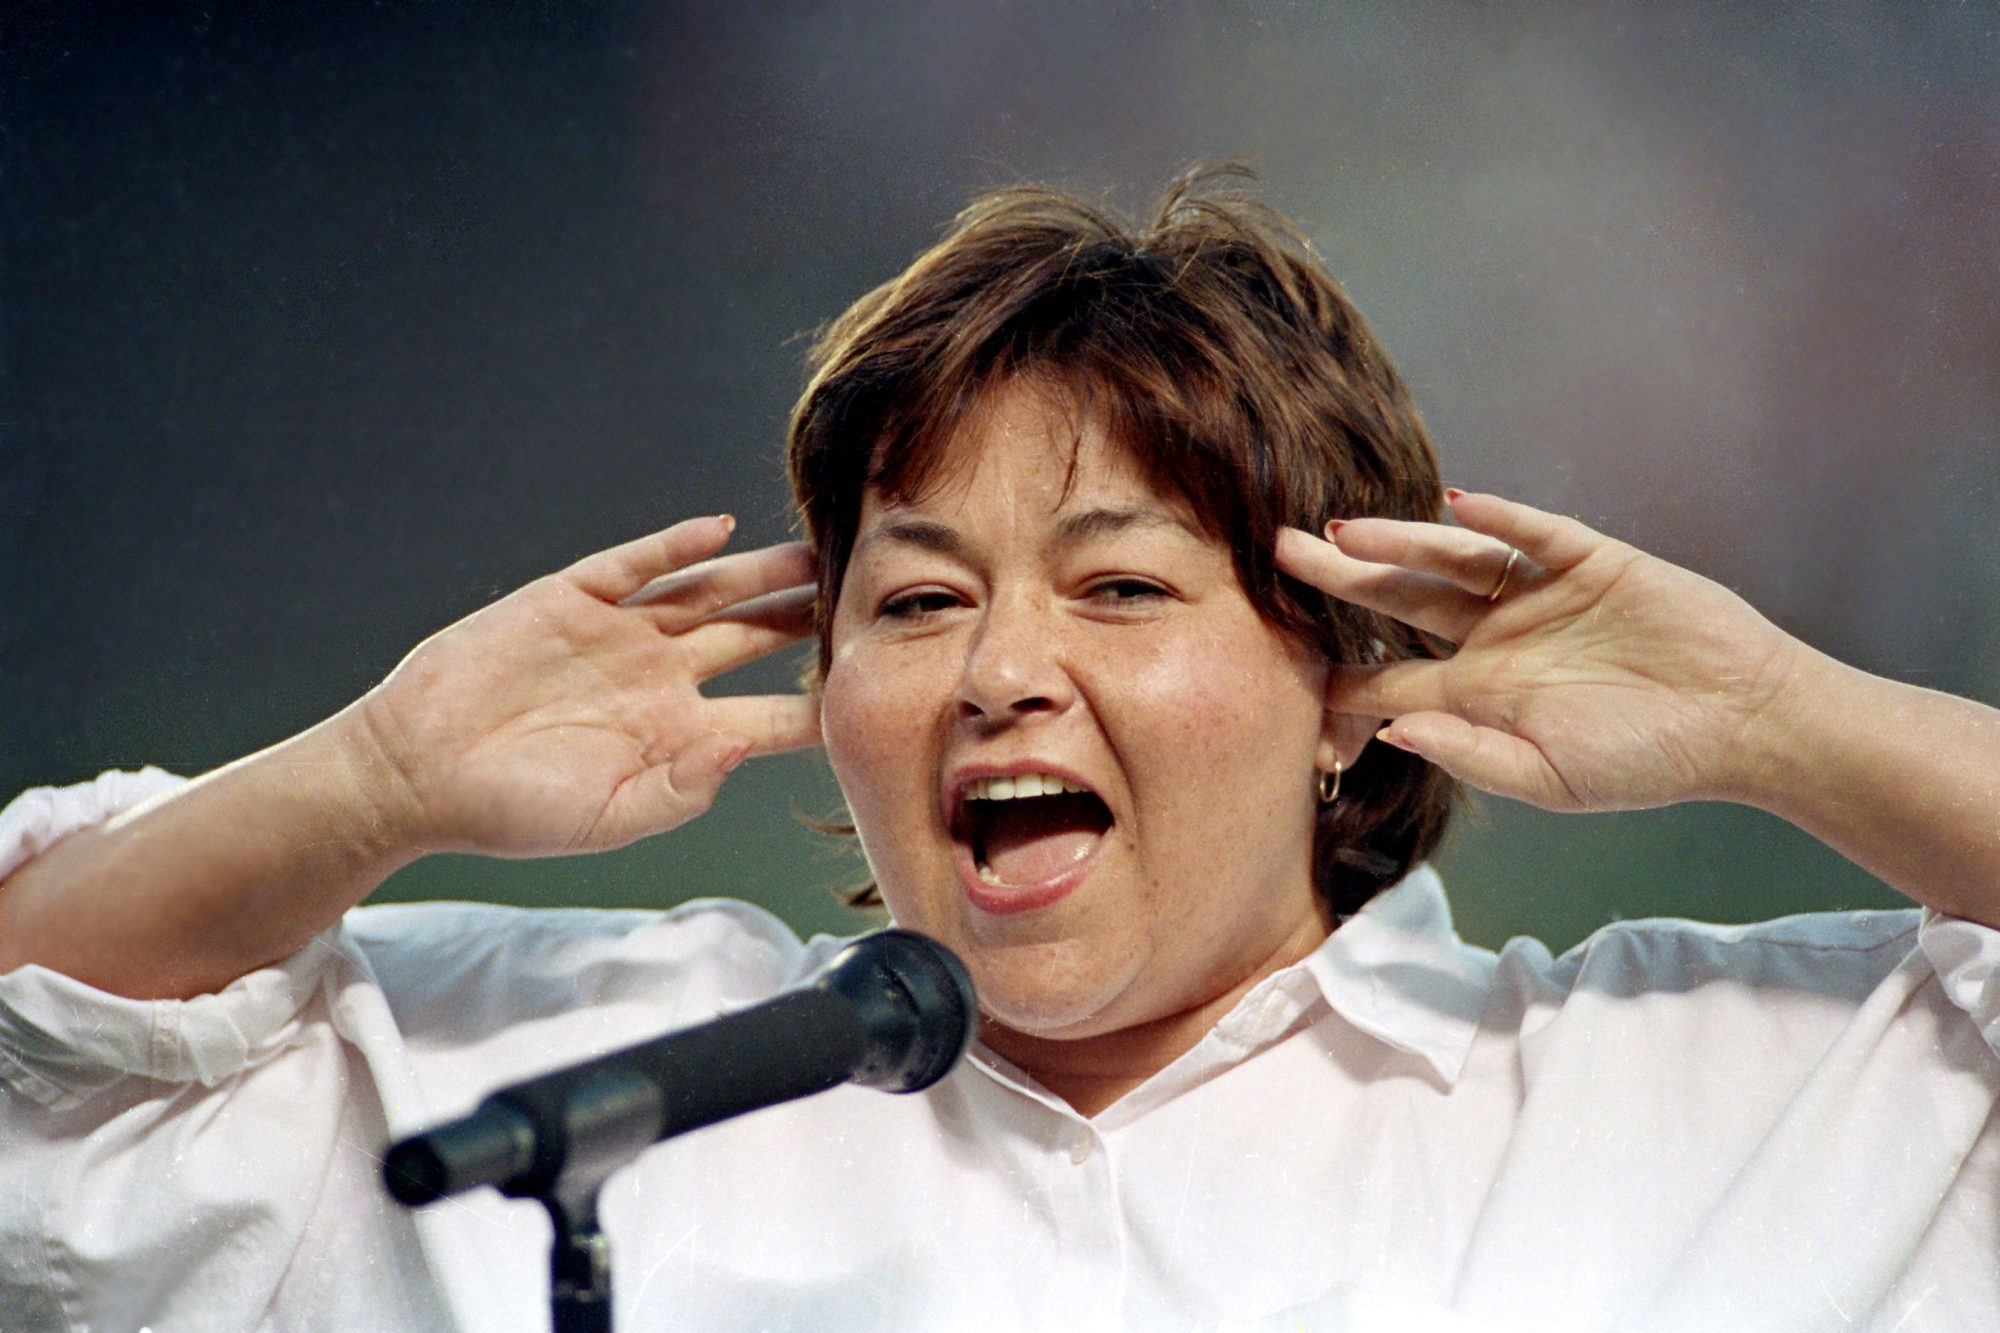 ROSEANNE BARR NATIONAL ANTHEM, SAN DIEGO, USA